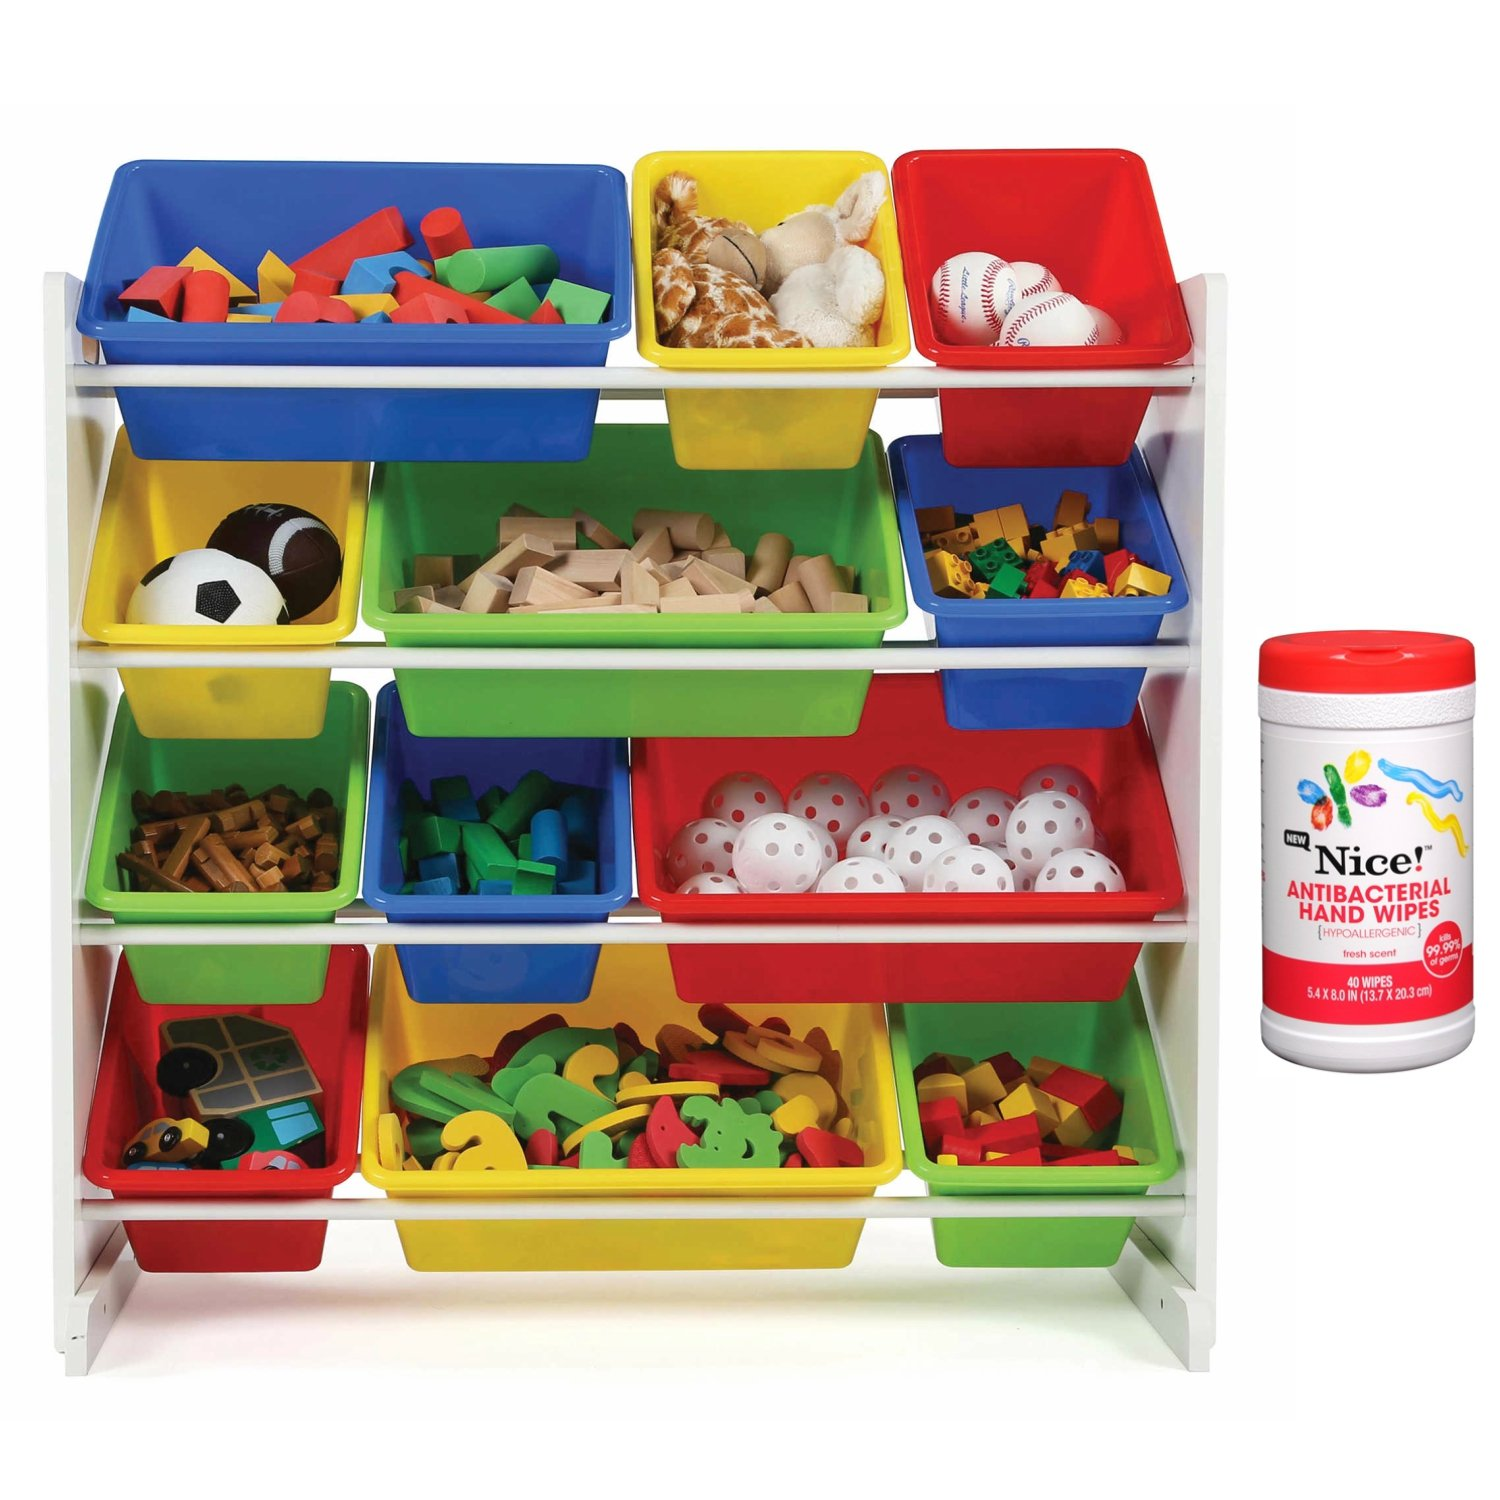 Tot Tutors Kids 12 Plastic Bin Toy Storage Organizer in White/Multicolor with Antibacterial Hand Wipes